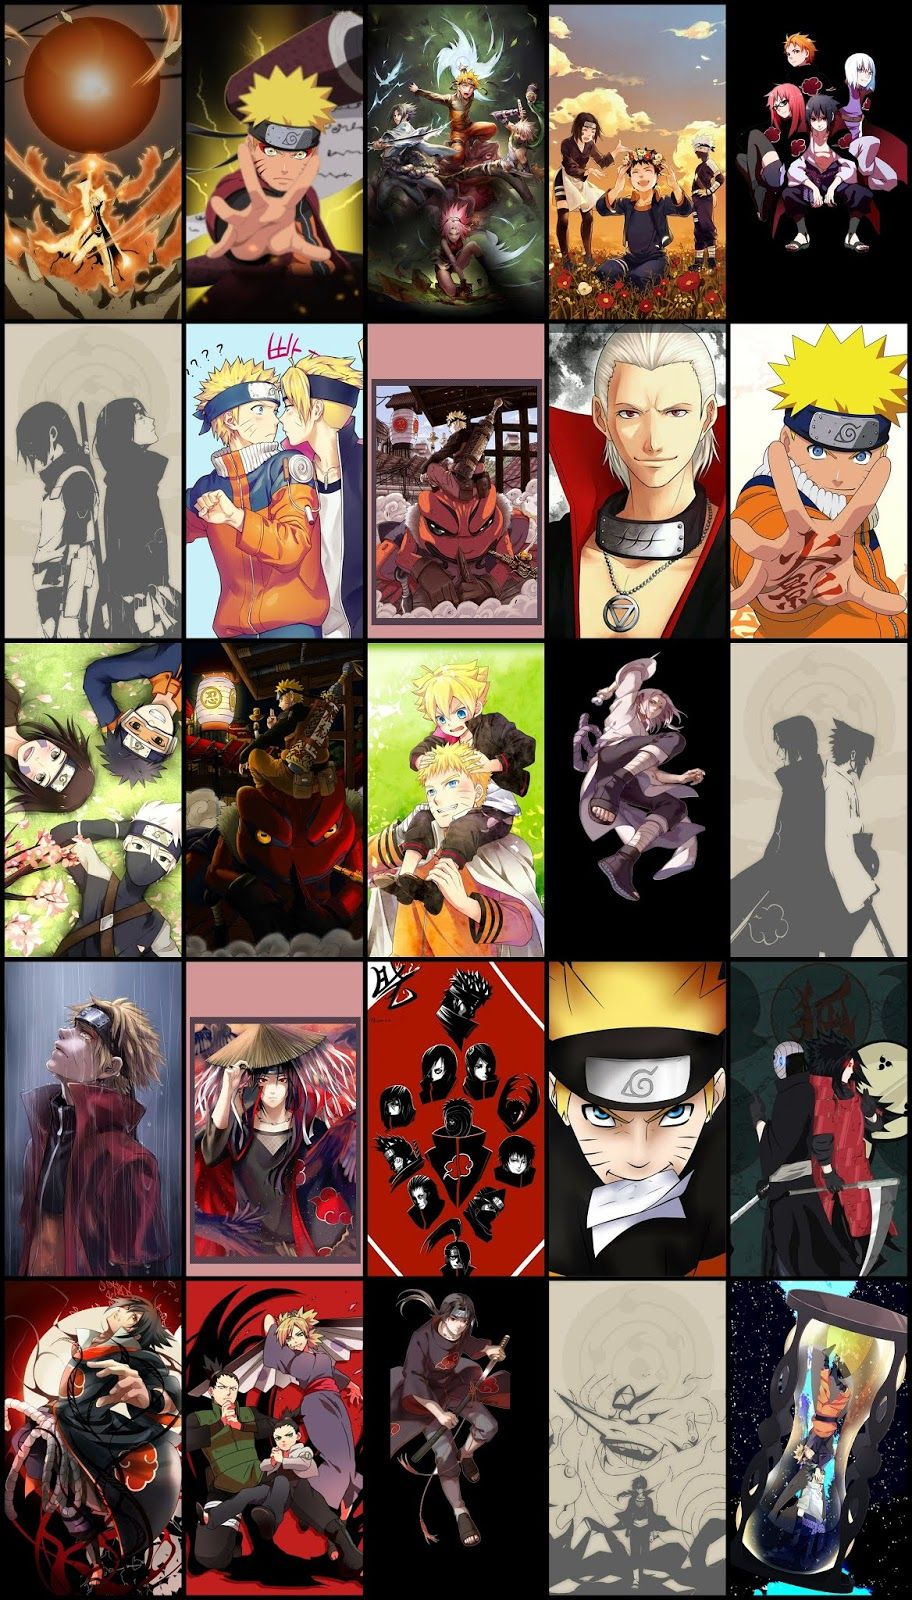 Naruto Wallpaper Pack For Android Mobile Phone Part 04 Naruto Wallpaper Mobile Phone Logo Anime Wallpaper